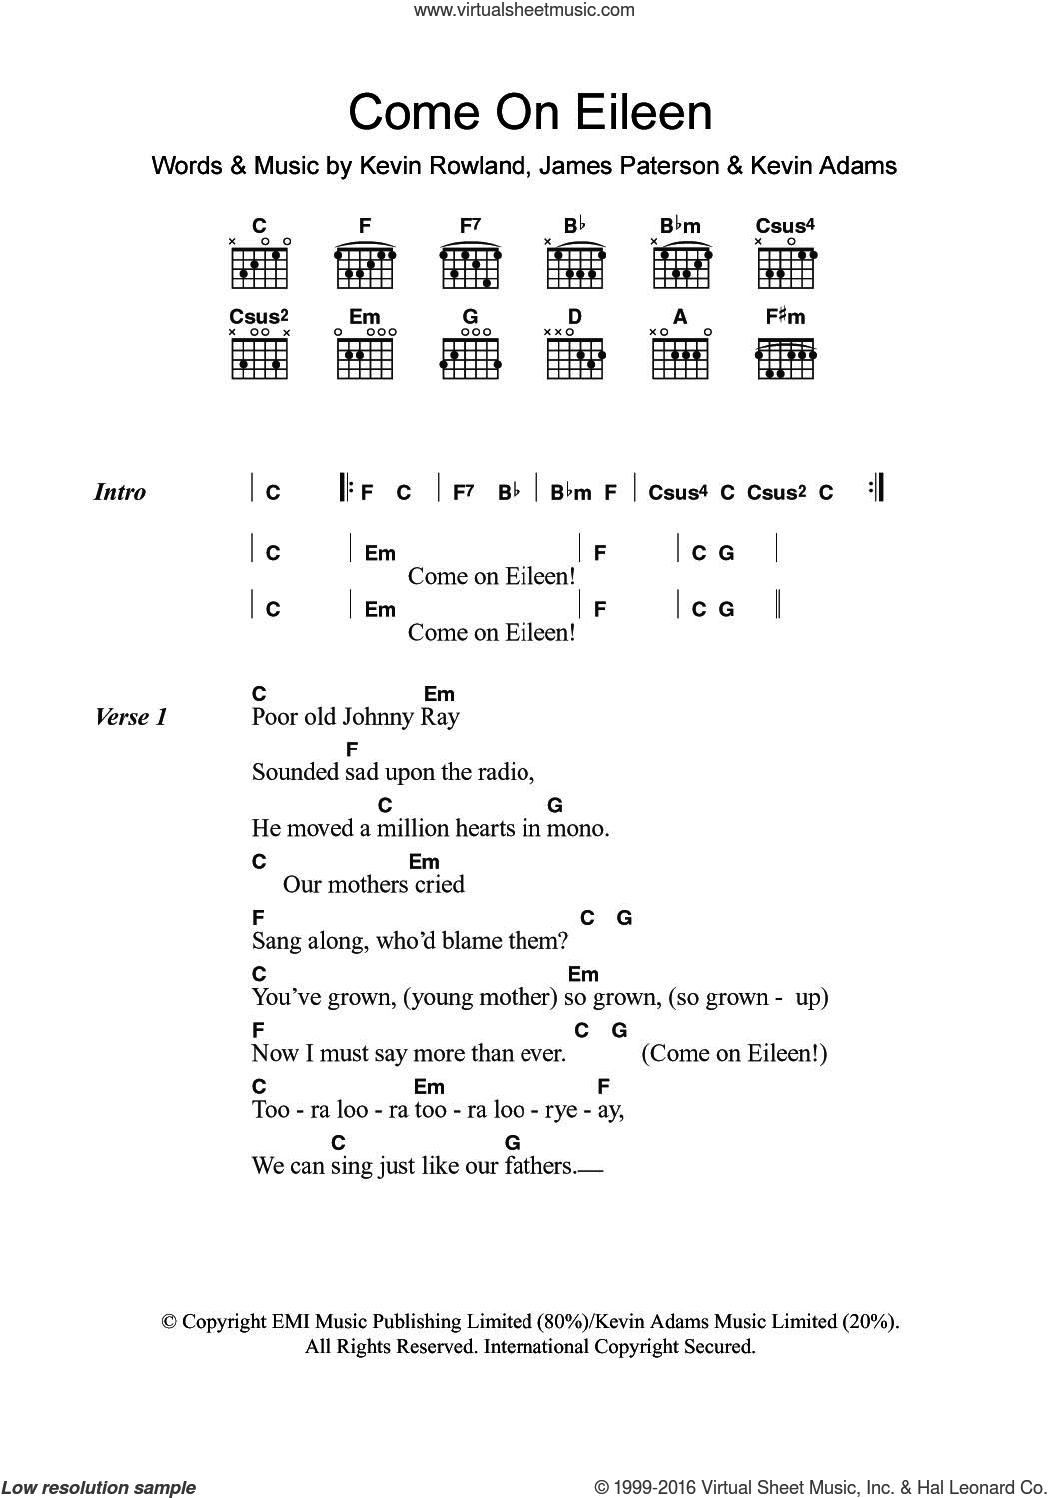 Come On Eileen sheet music for guitar (chords) by Dexy's Midnight Runners, James Paterson, Kevin Adams and Kevin Rowland, intermediate